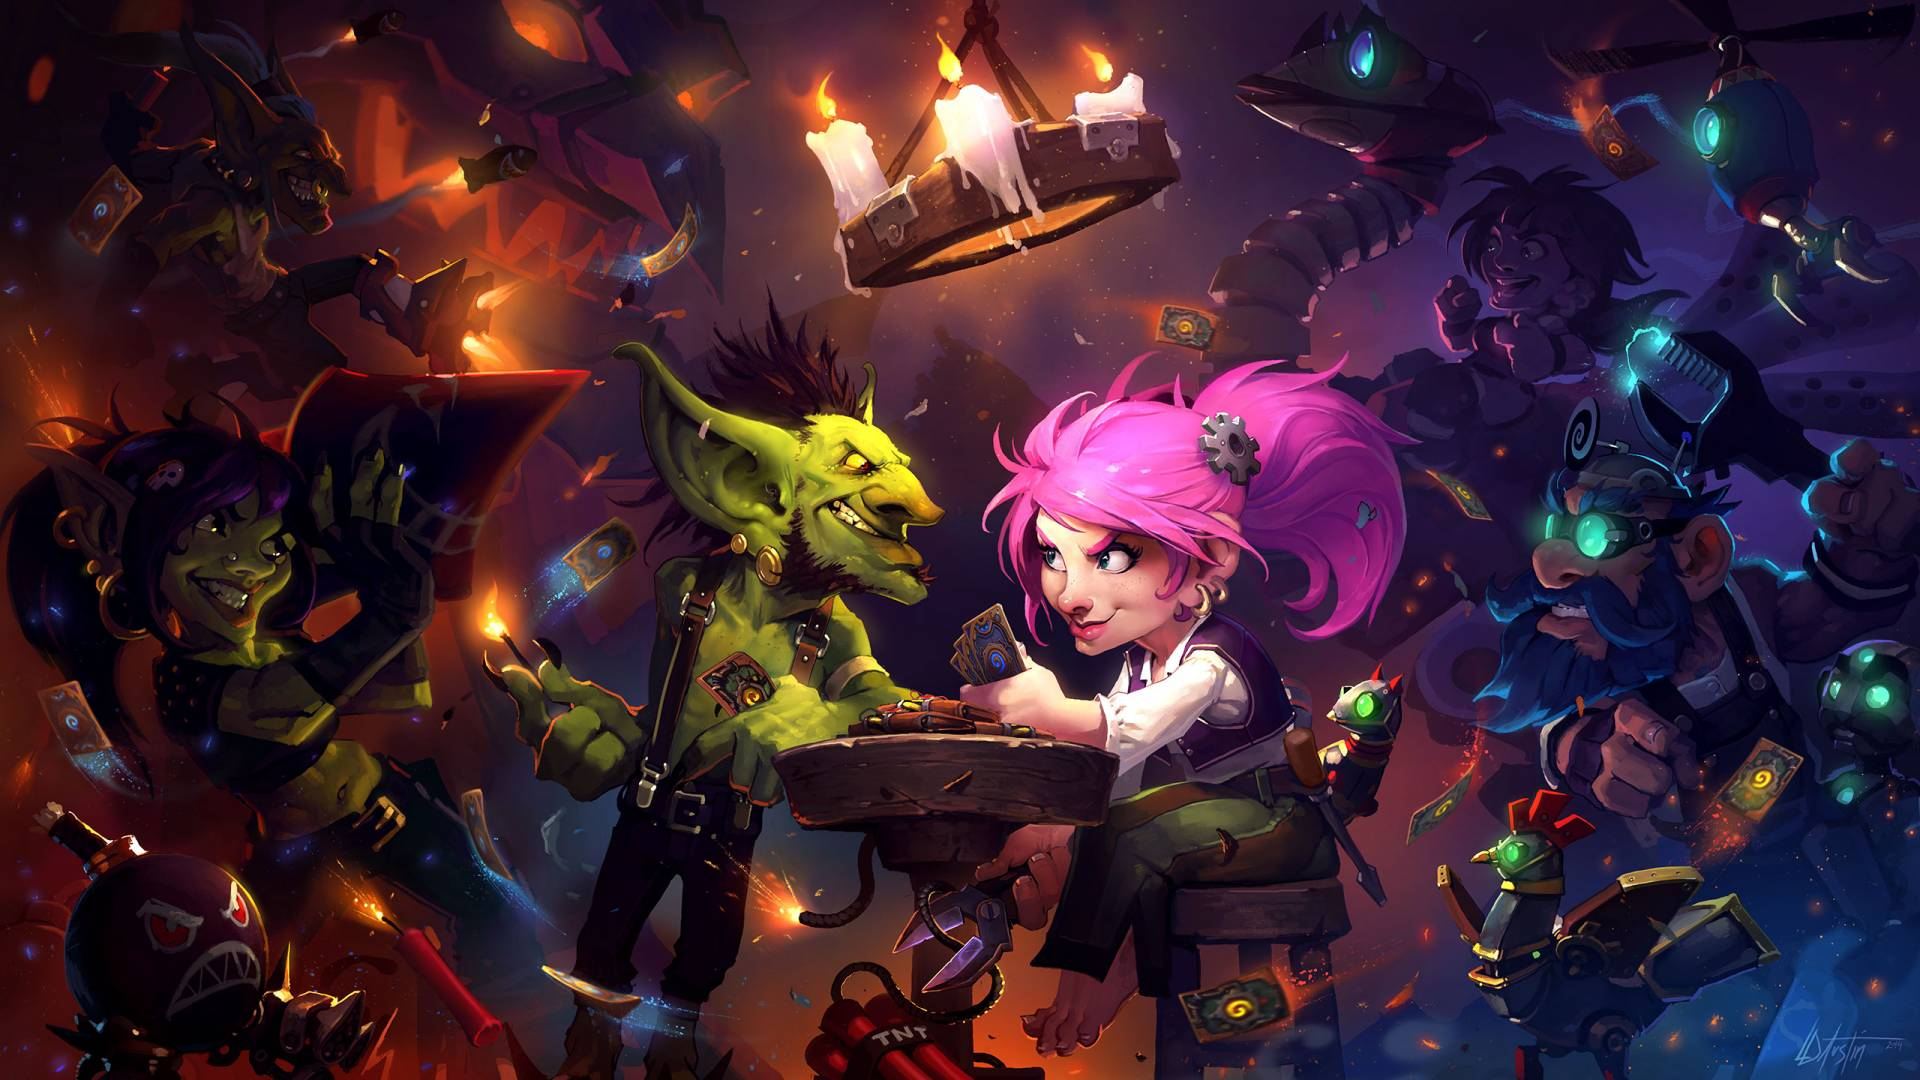 hooked on hearthstone and why you should be too